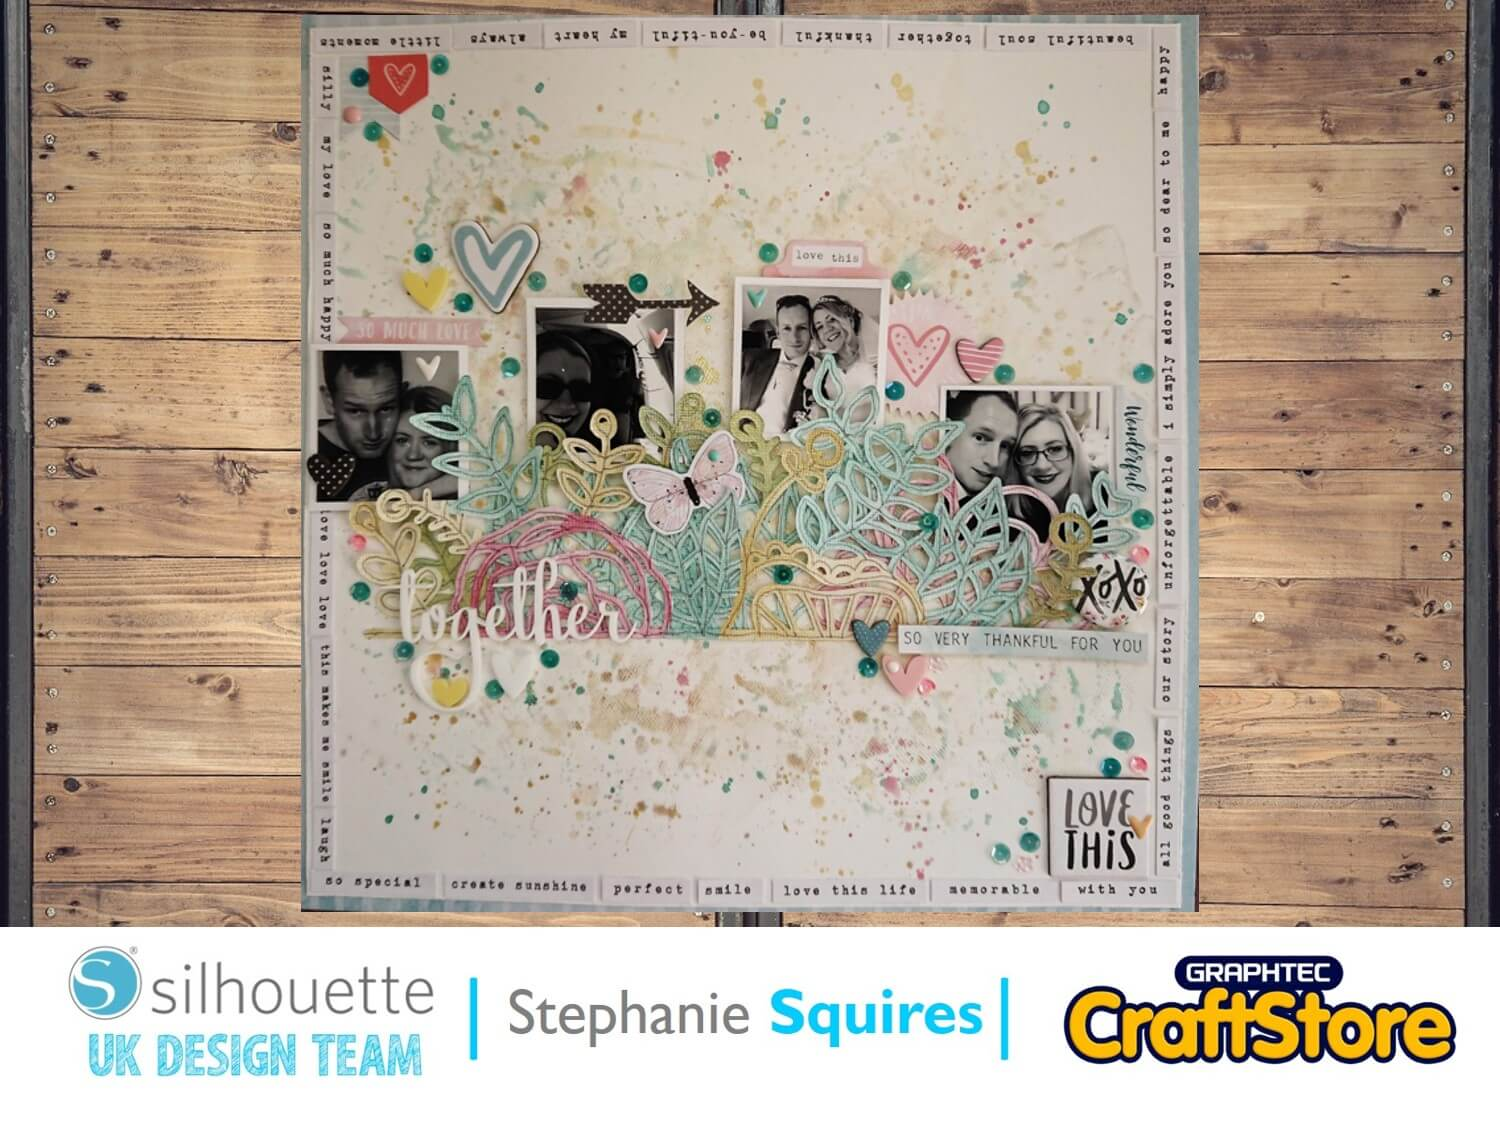 silhouette uk blog - stephanie squires - scrapbooking with steph - together - main